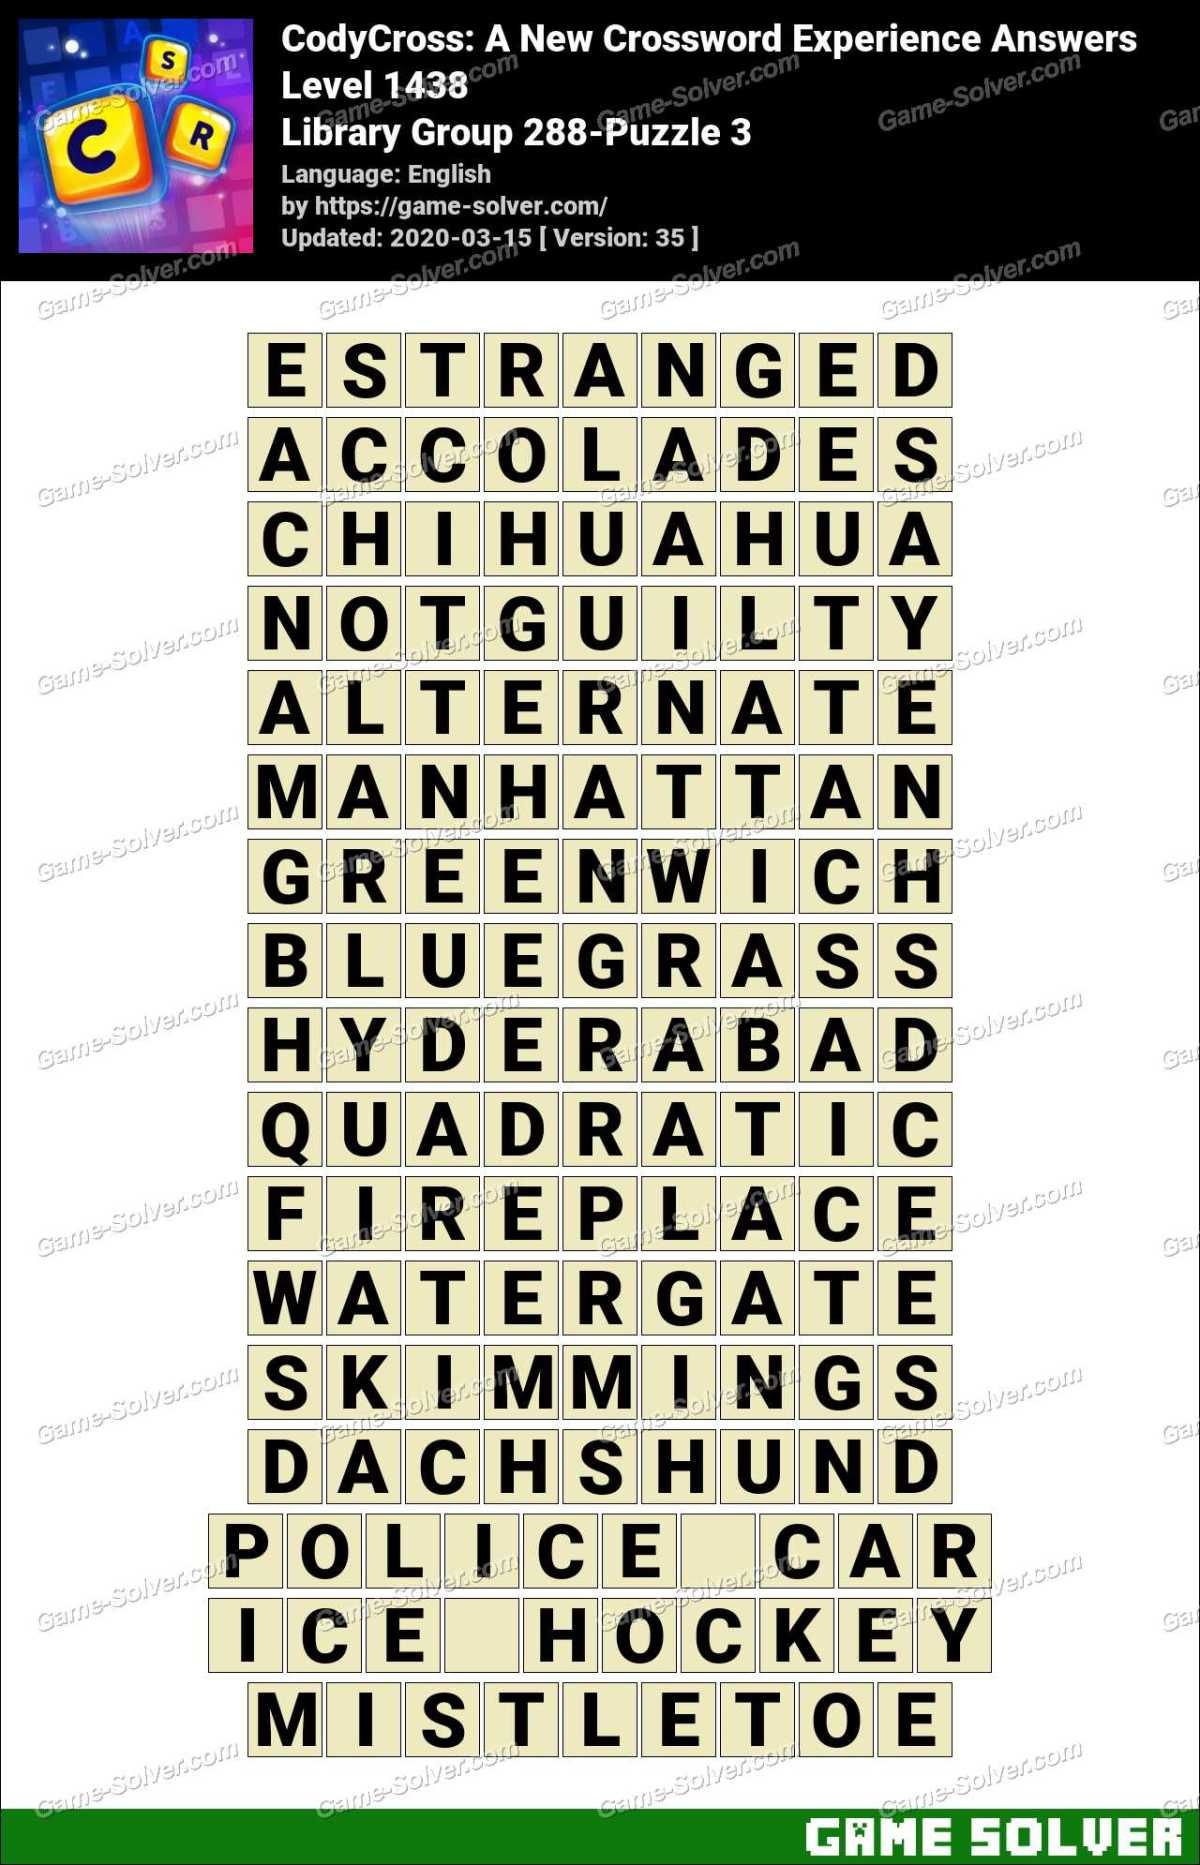 CodyCross Library Group 288-Puzzle 3 Answers